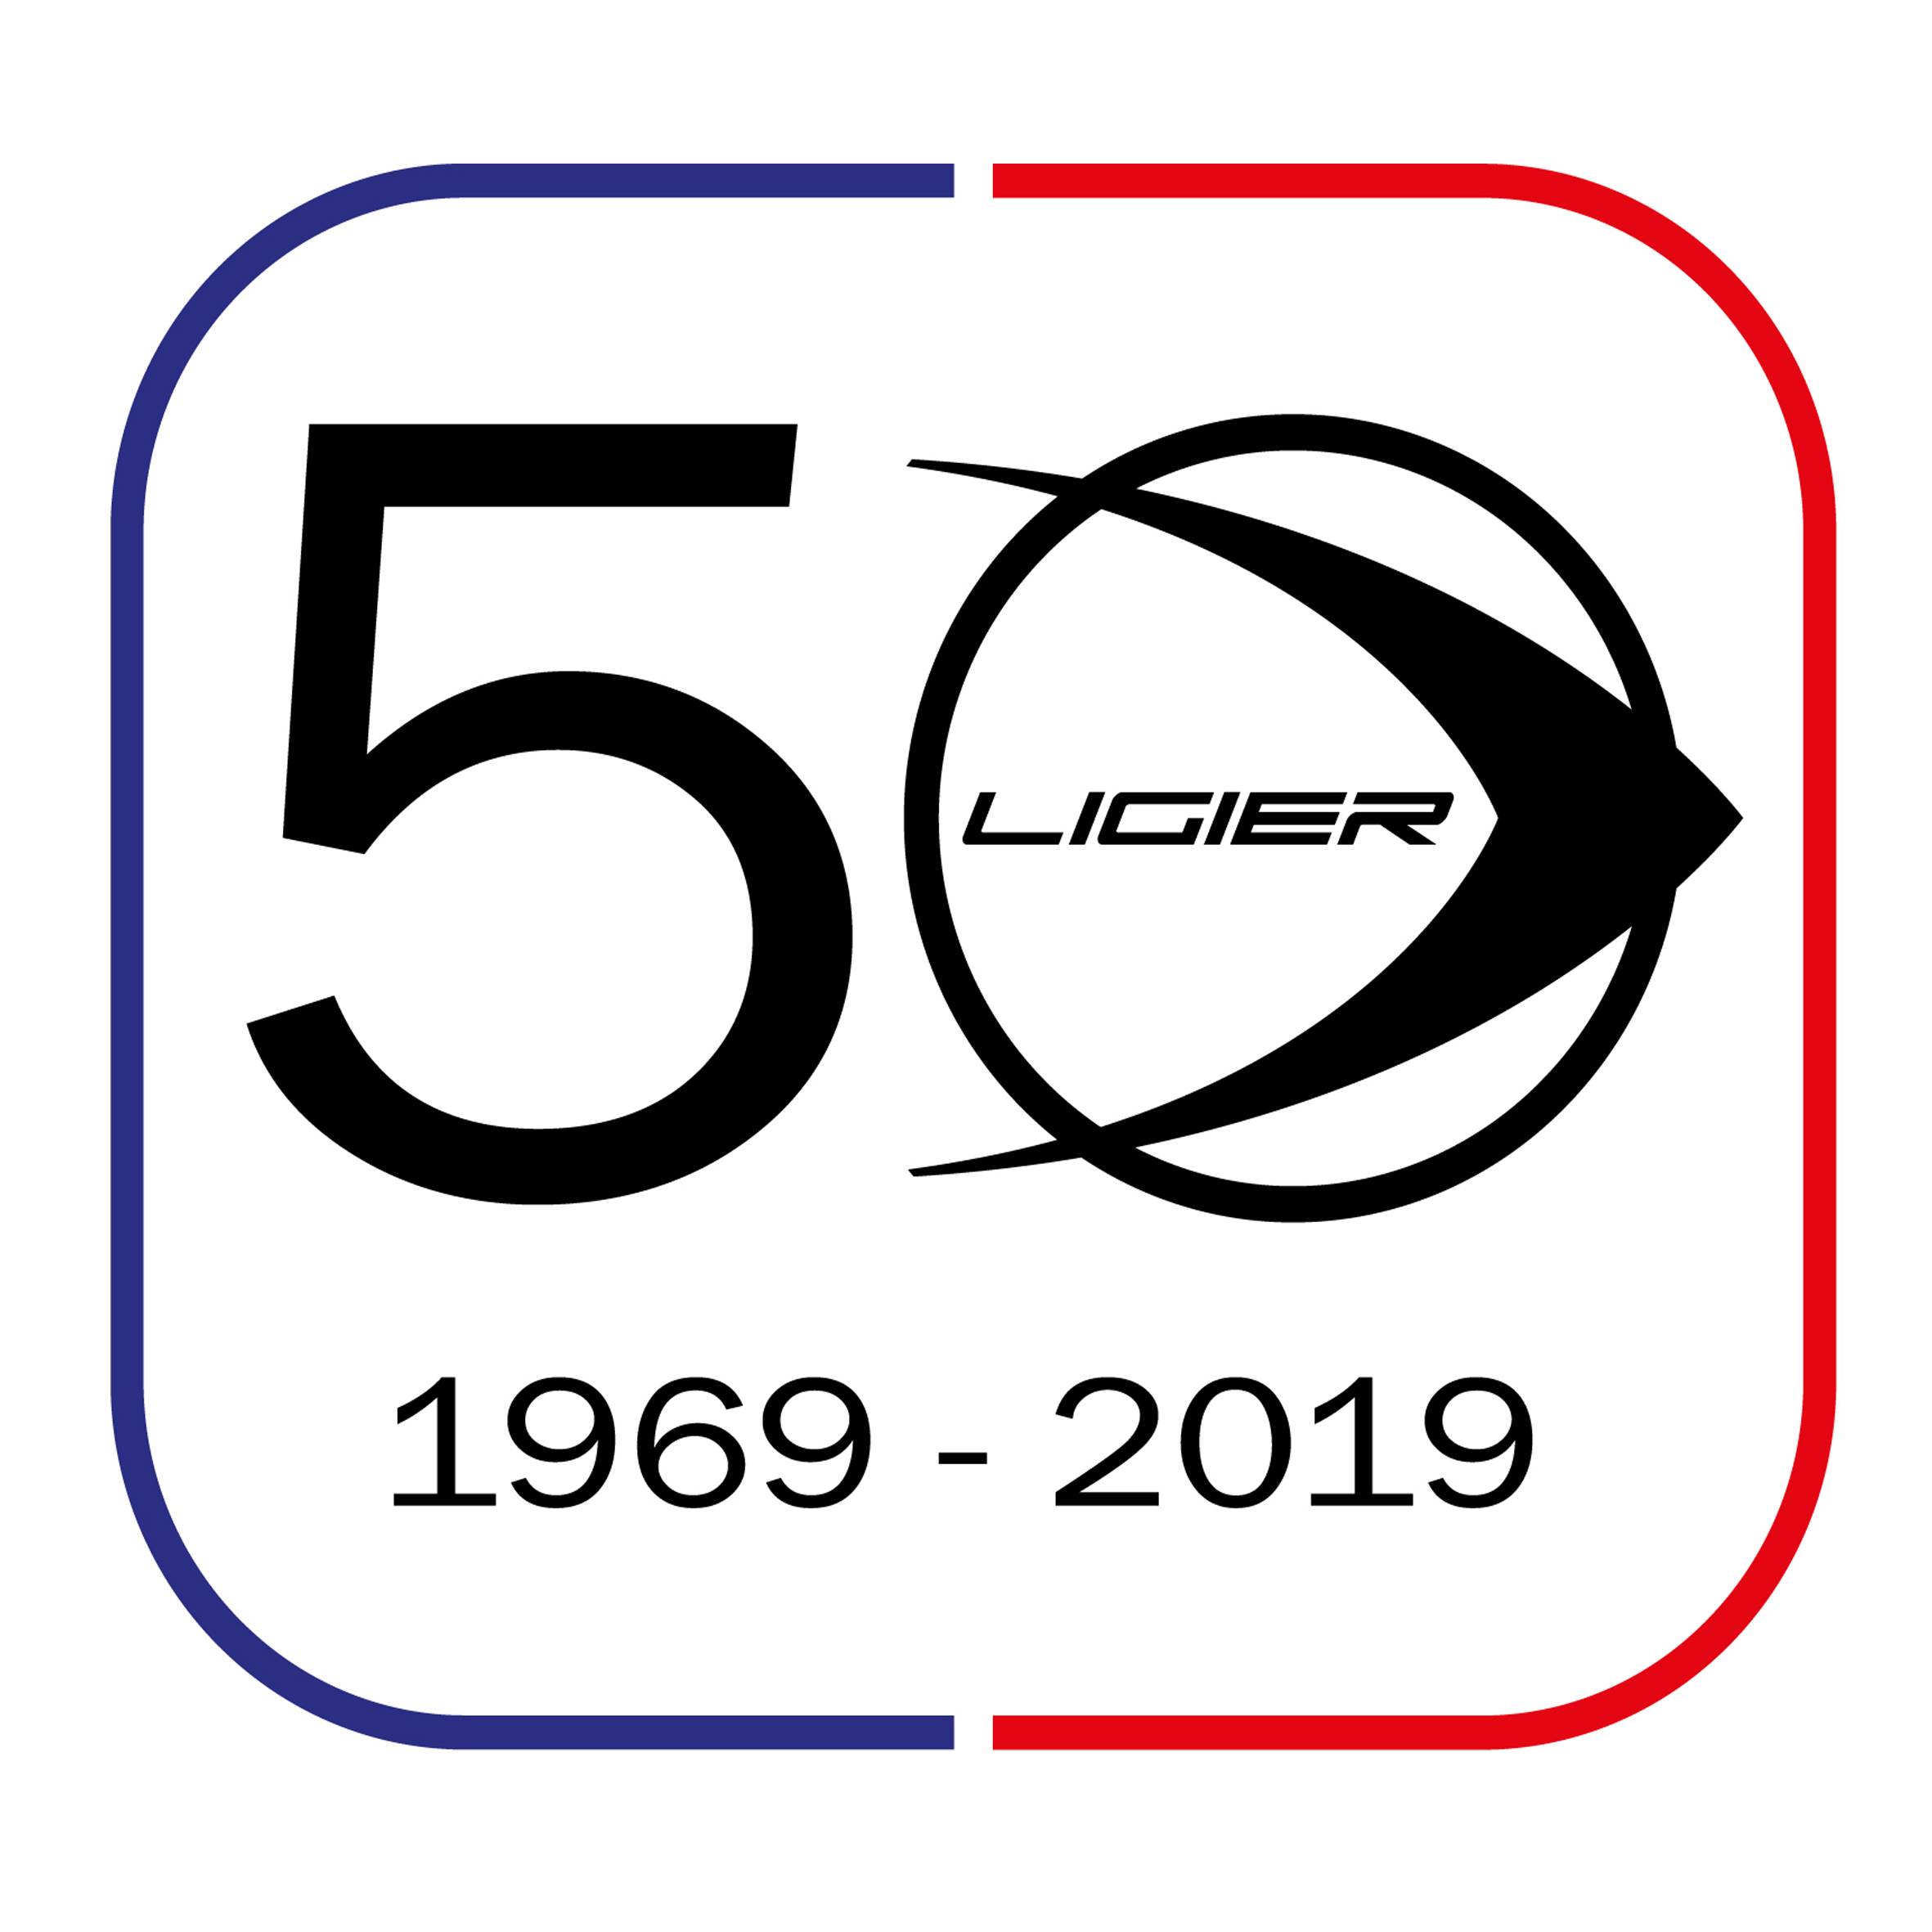 50 years of Ligier